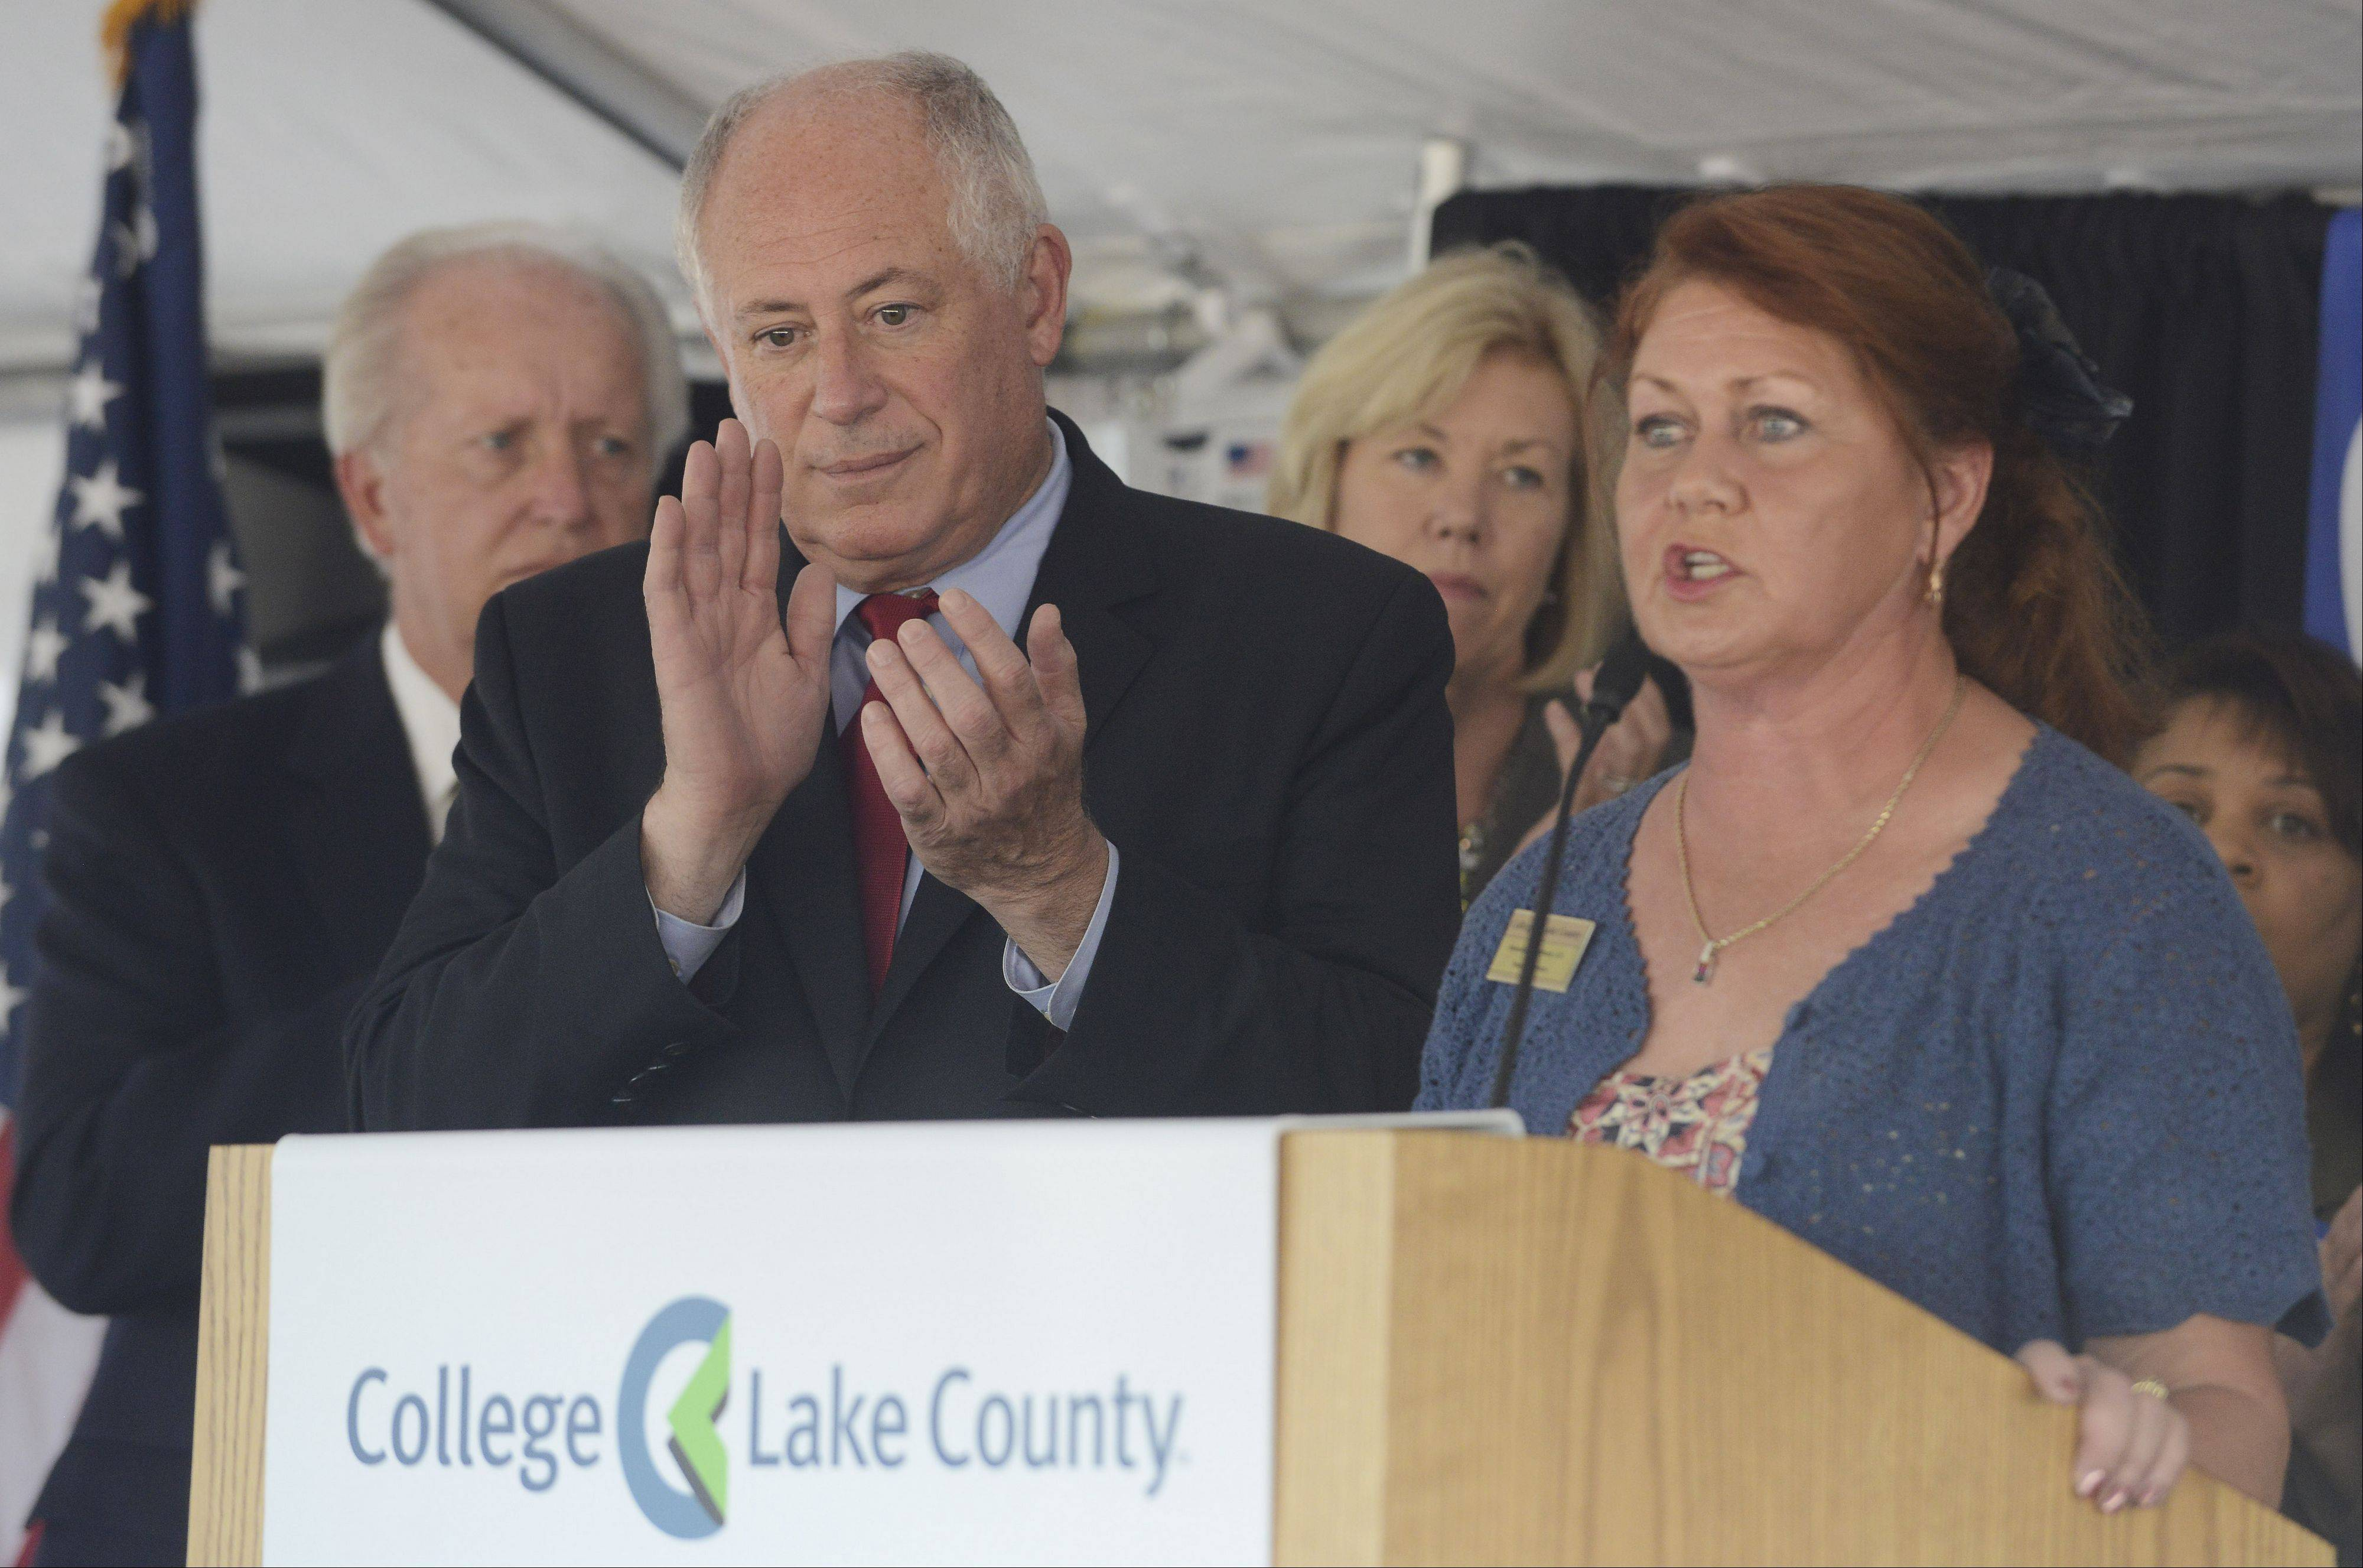 JOE LEWNARD/jlewnard@dailyherald.comGov. Pat Quinn applauds as College of Lake County board Chairman Amanda Howland speaks during a gathering Thursday on the planned expansion of the school's Lakeshore Campus in downtown Waukegan.